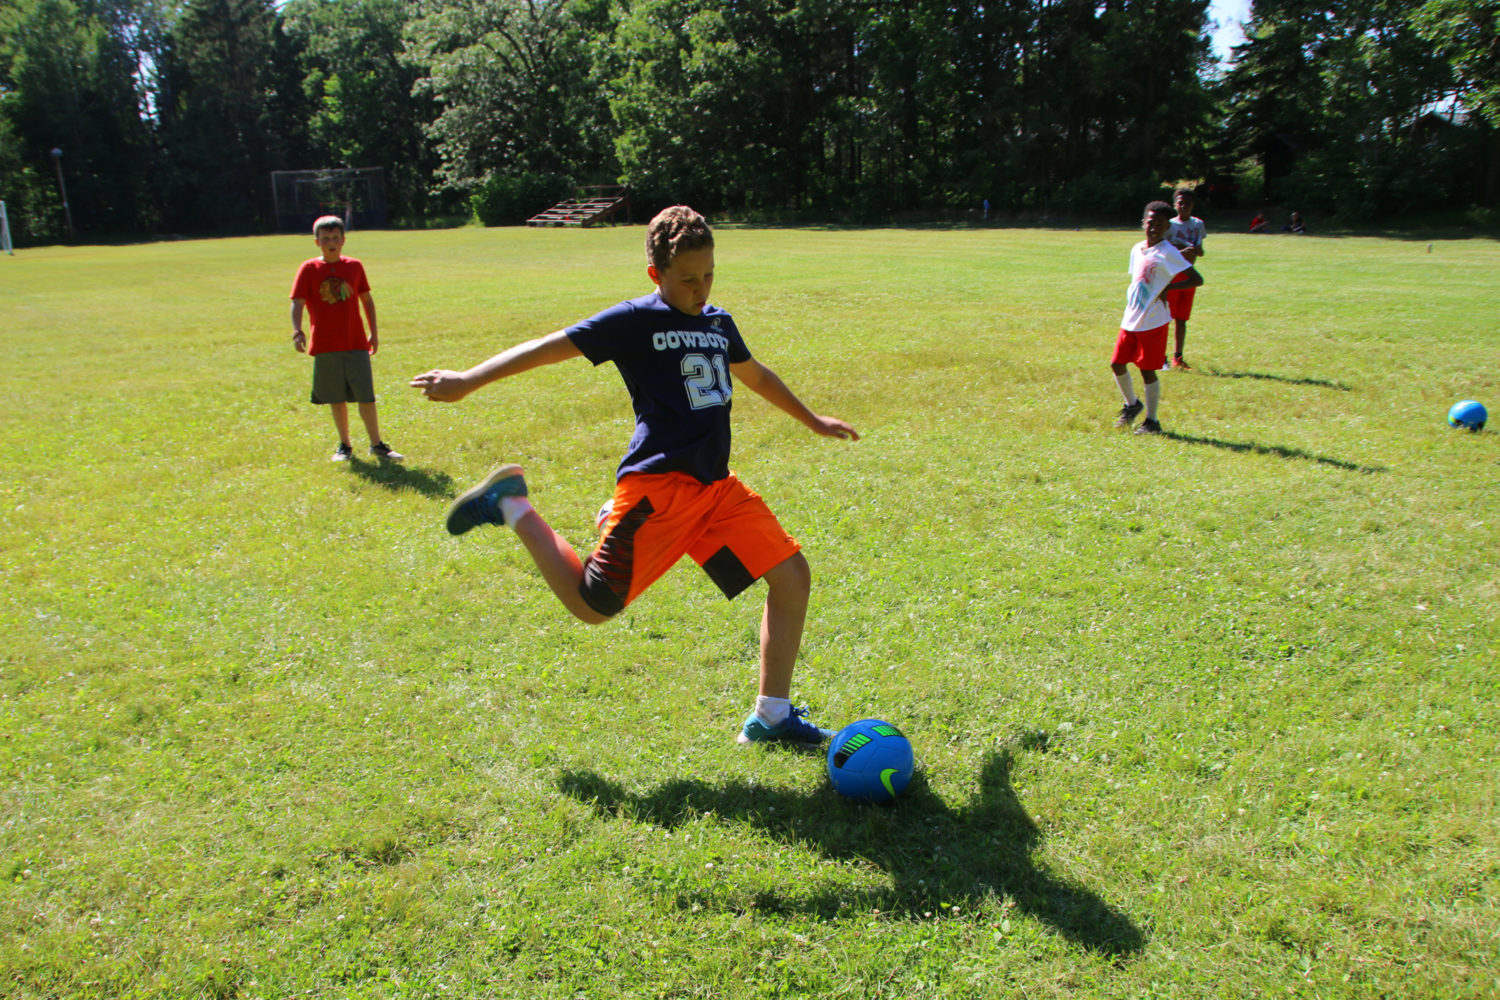 Boy kicking a soccer ball at boys summer camp